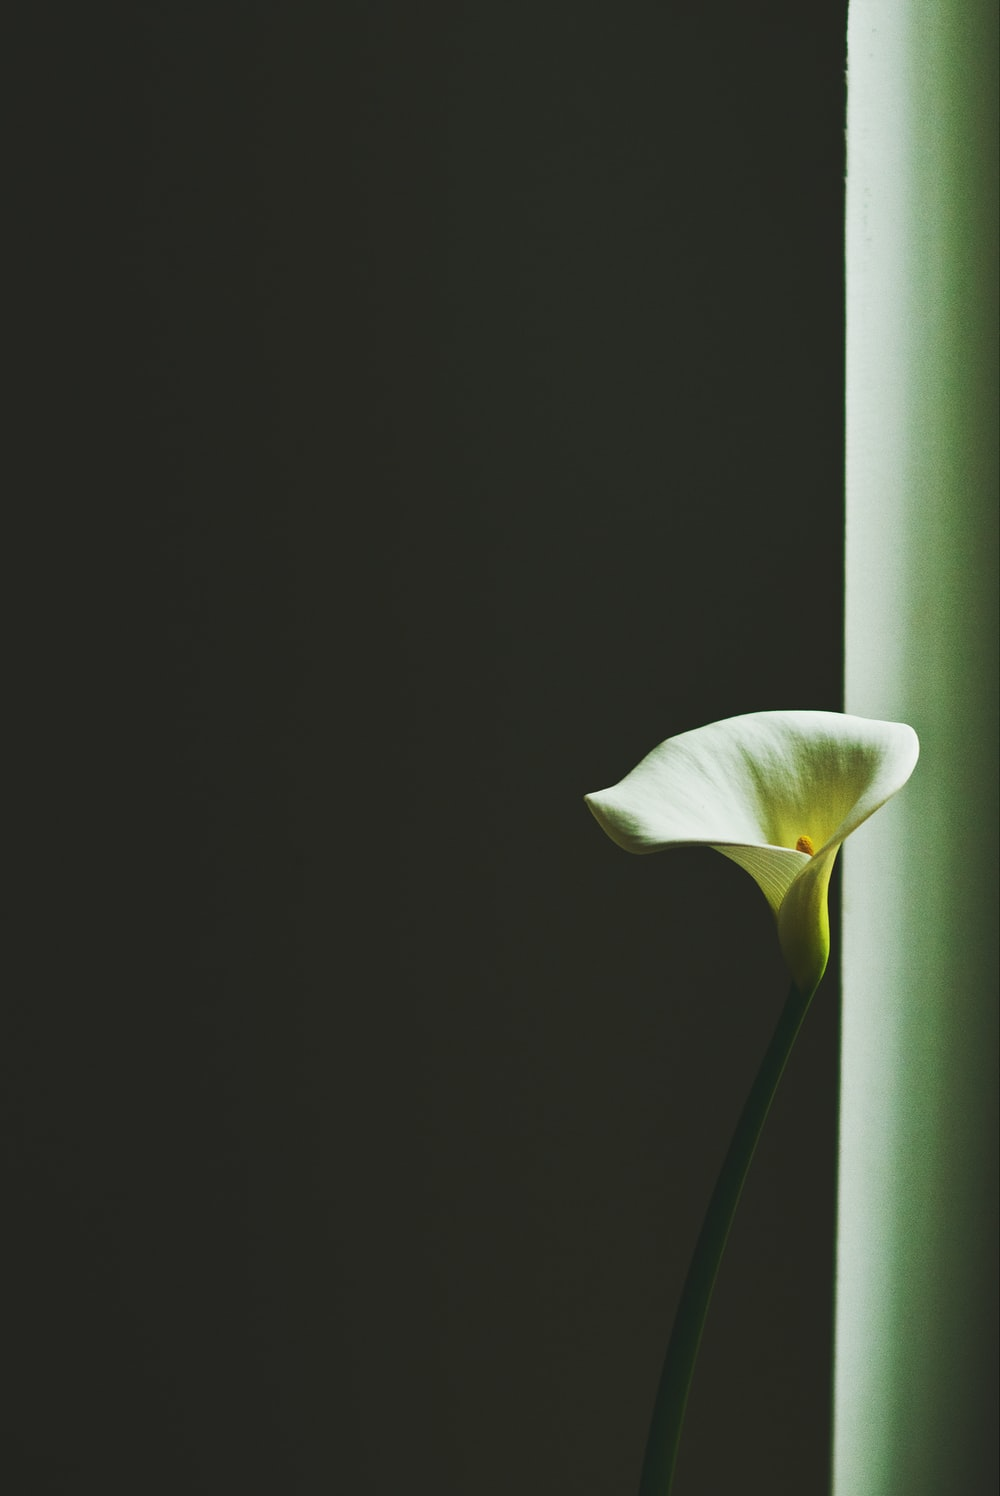 Graceful Bell Shaped Flower Photo By Marta Pawlik Martapawlik On